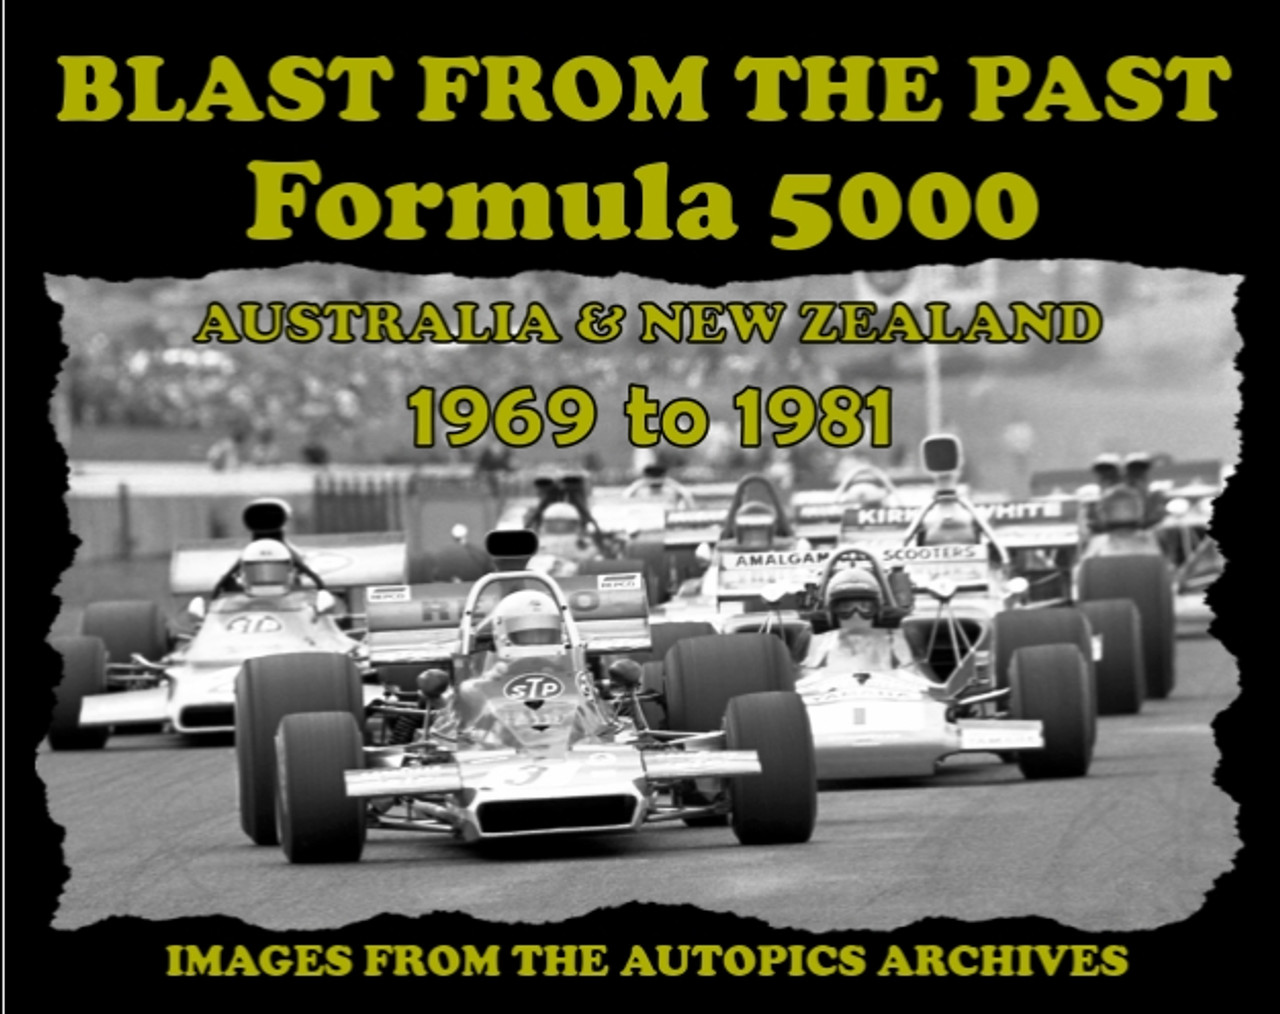 Blast From The Past, Formula 5000 Constructors - 80 Page Hard Cover Book - Pictorial History